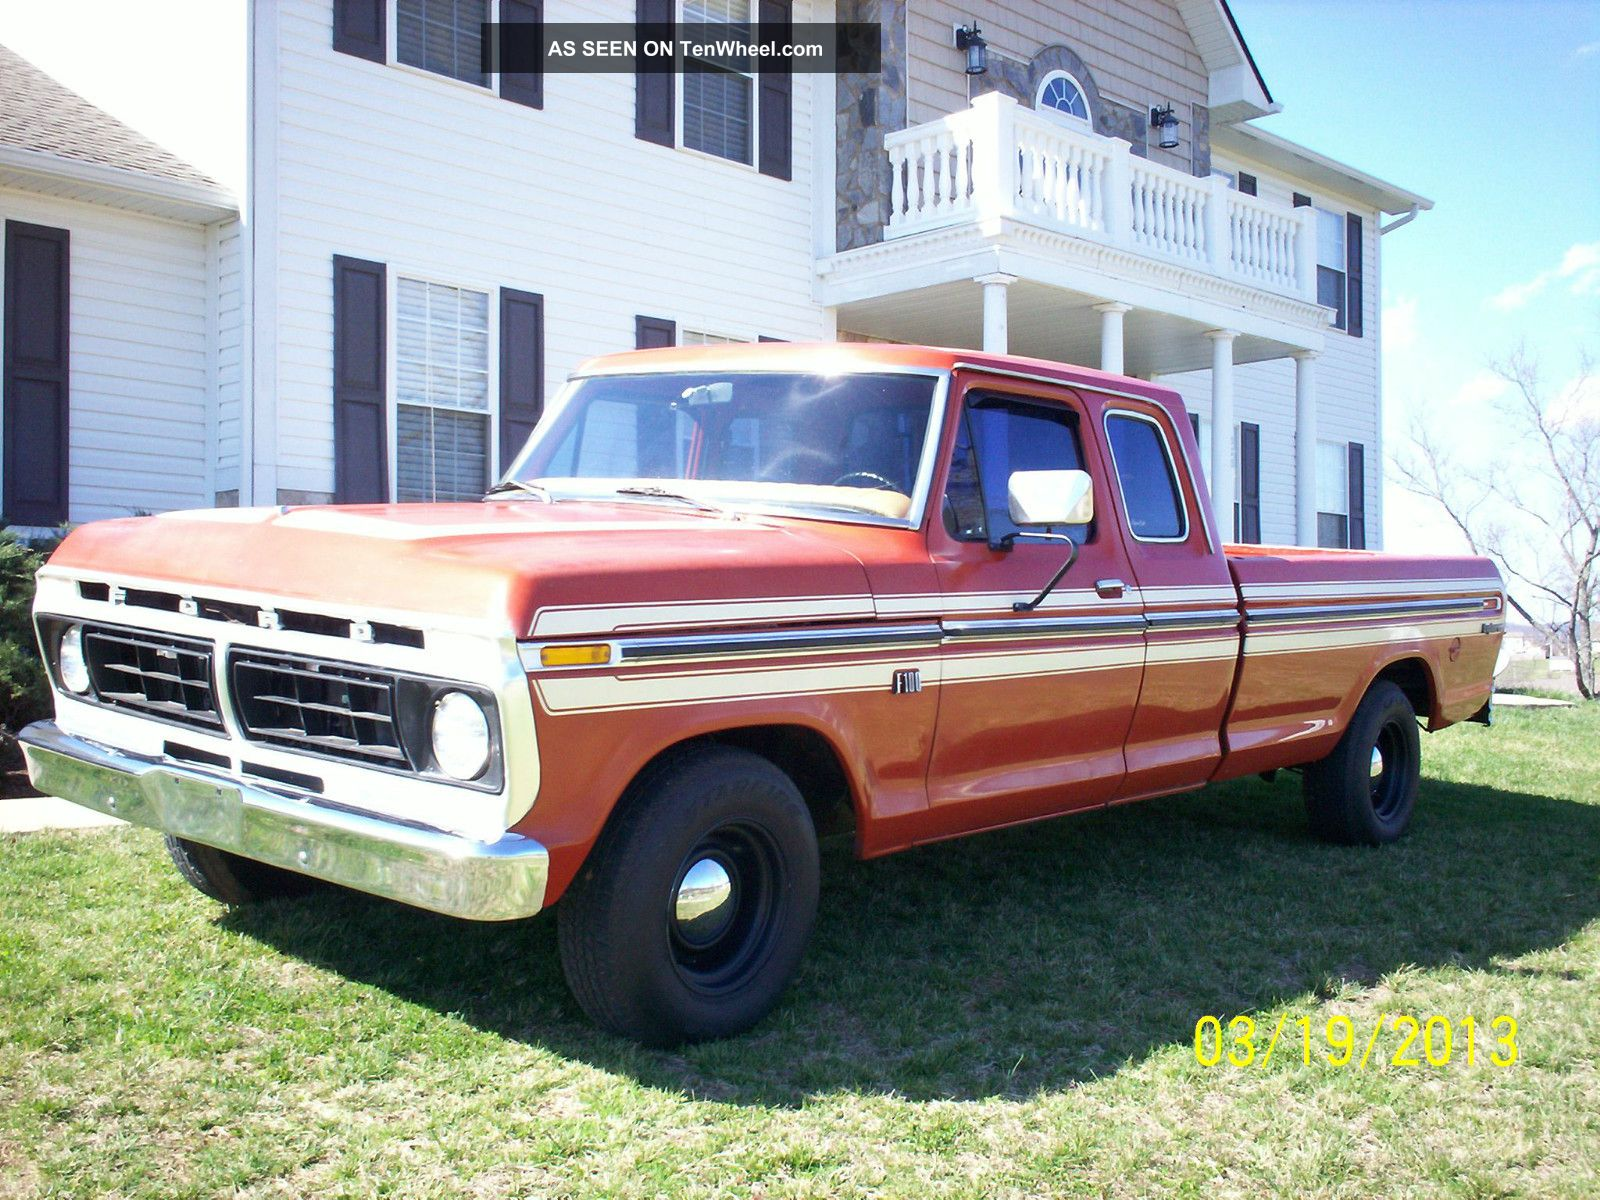 Ford F-100 1976 photo - 6